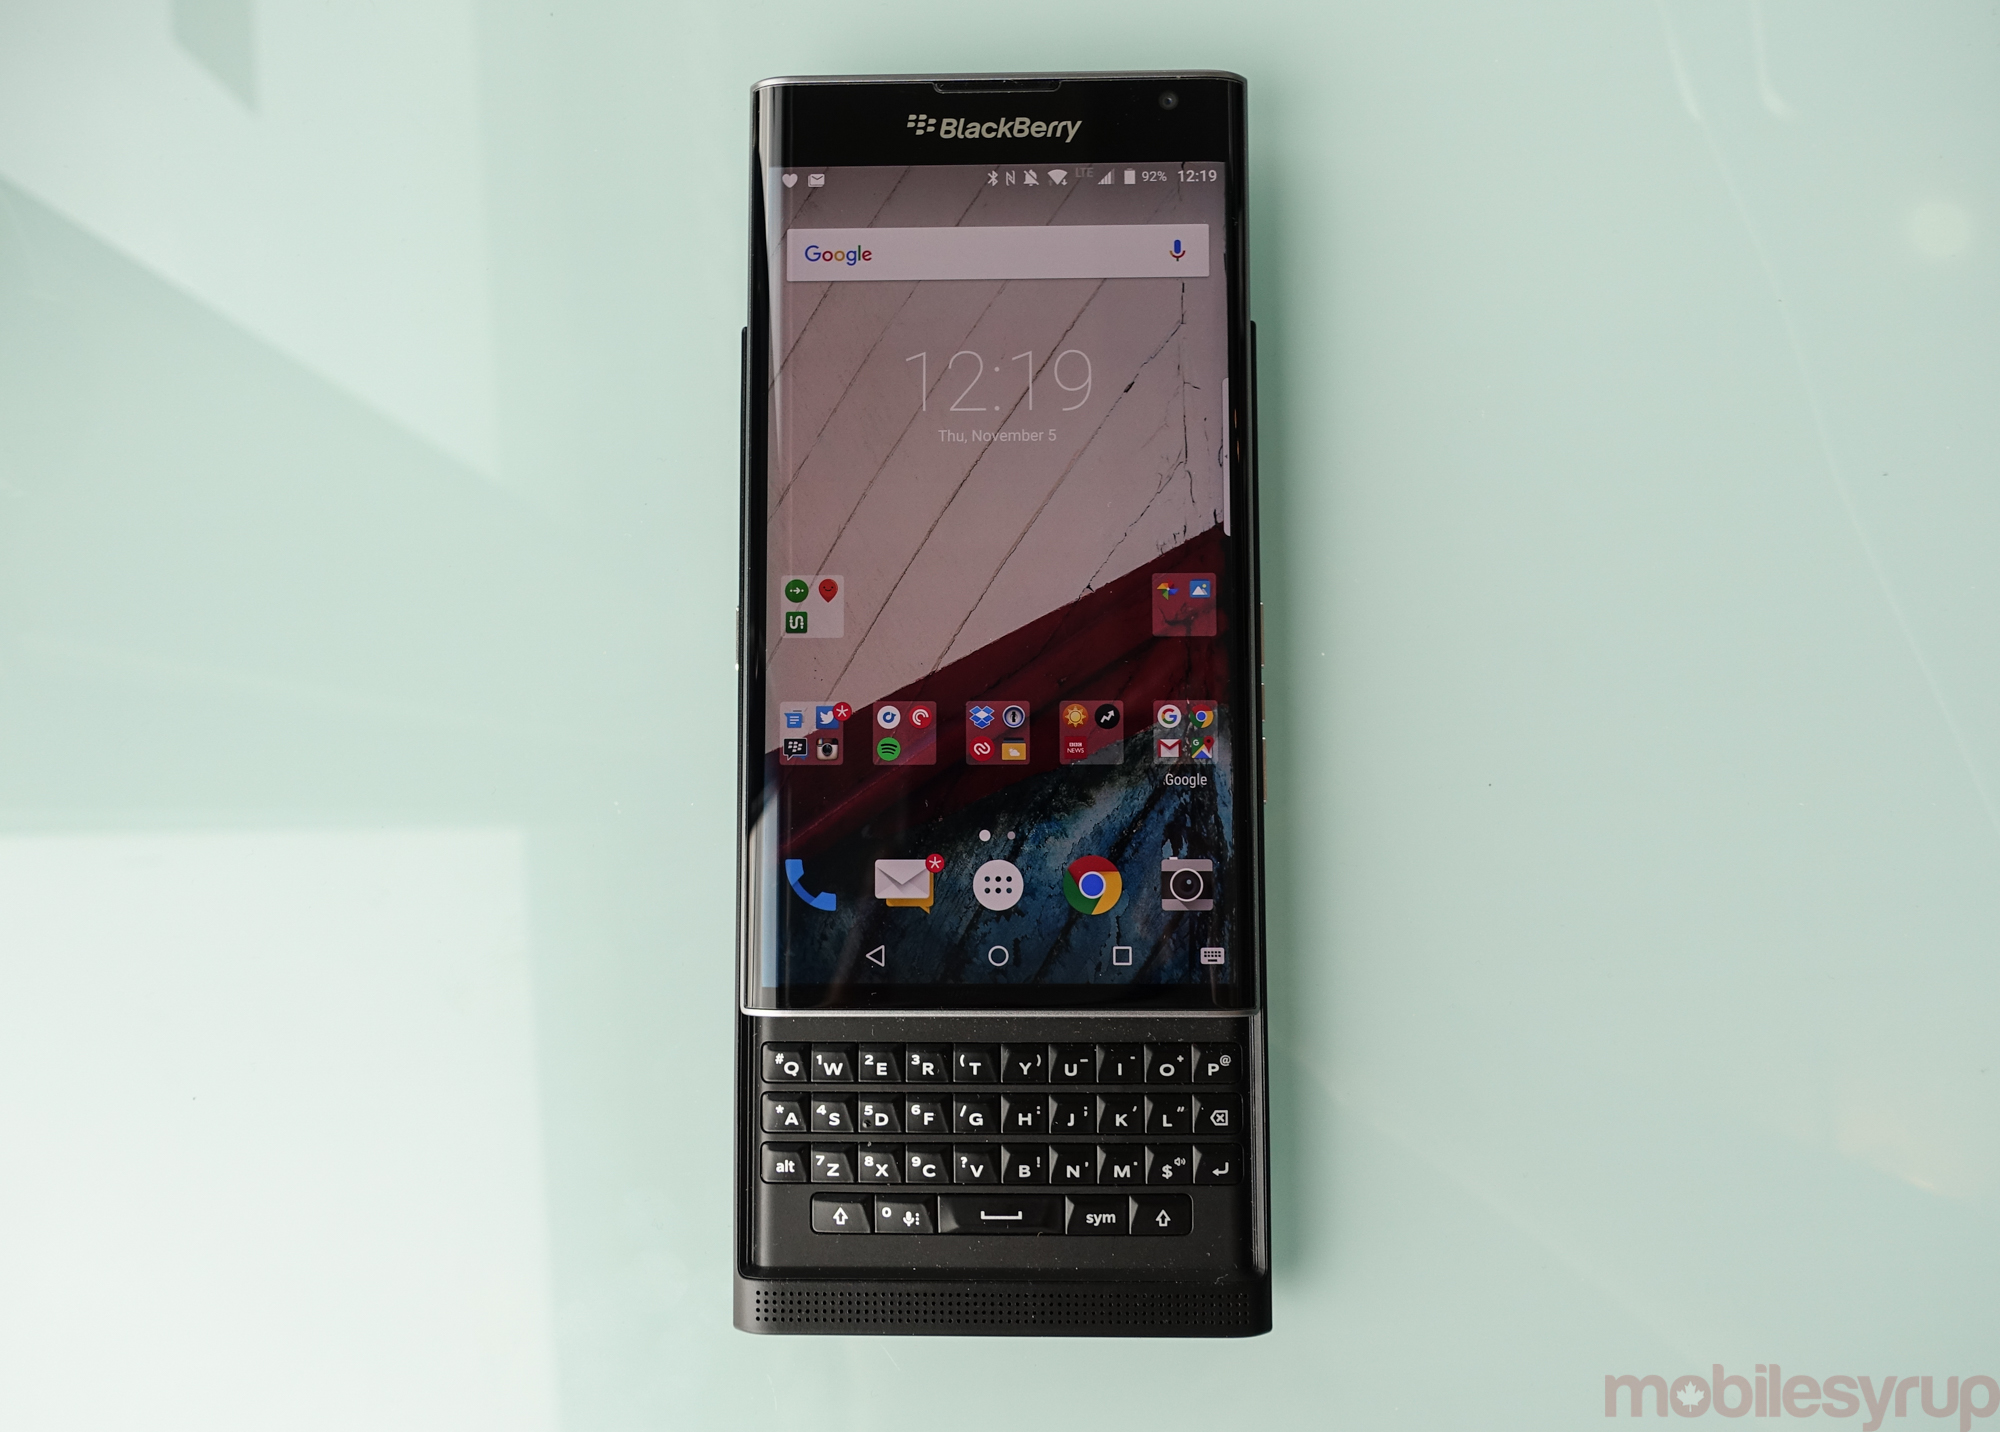 blackberryprivreview-01671